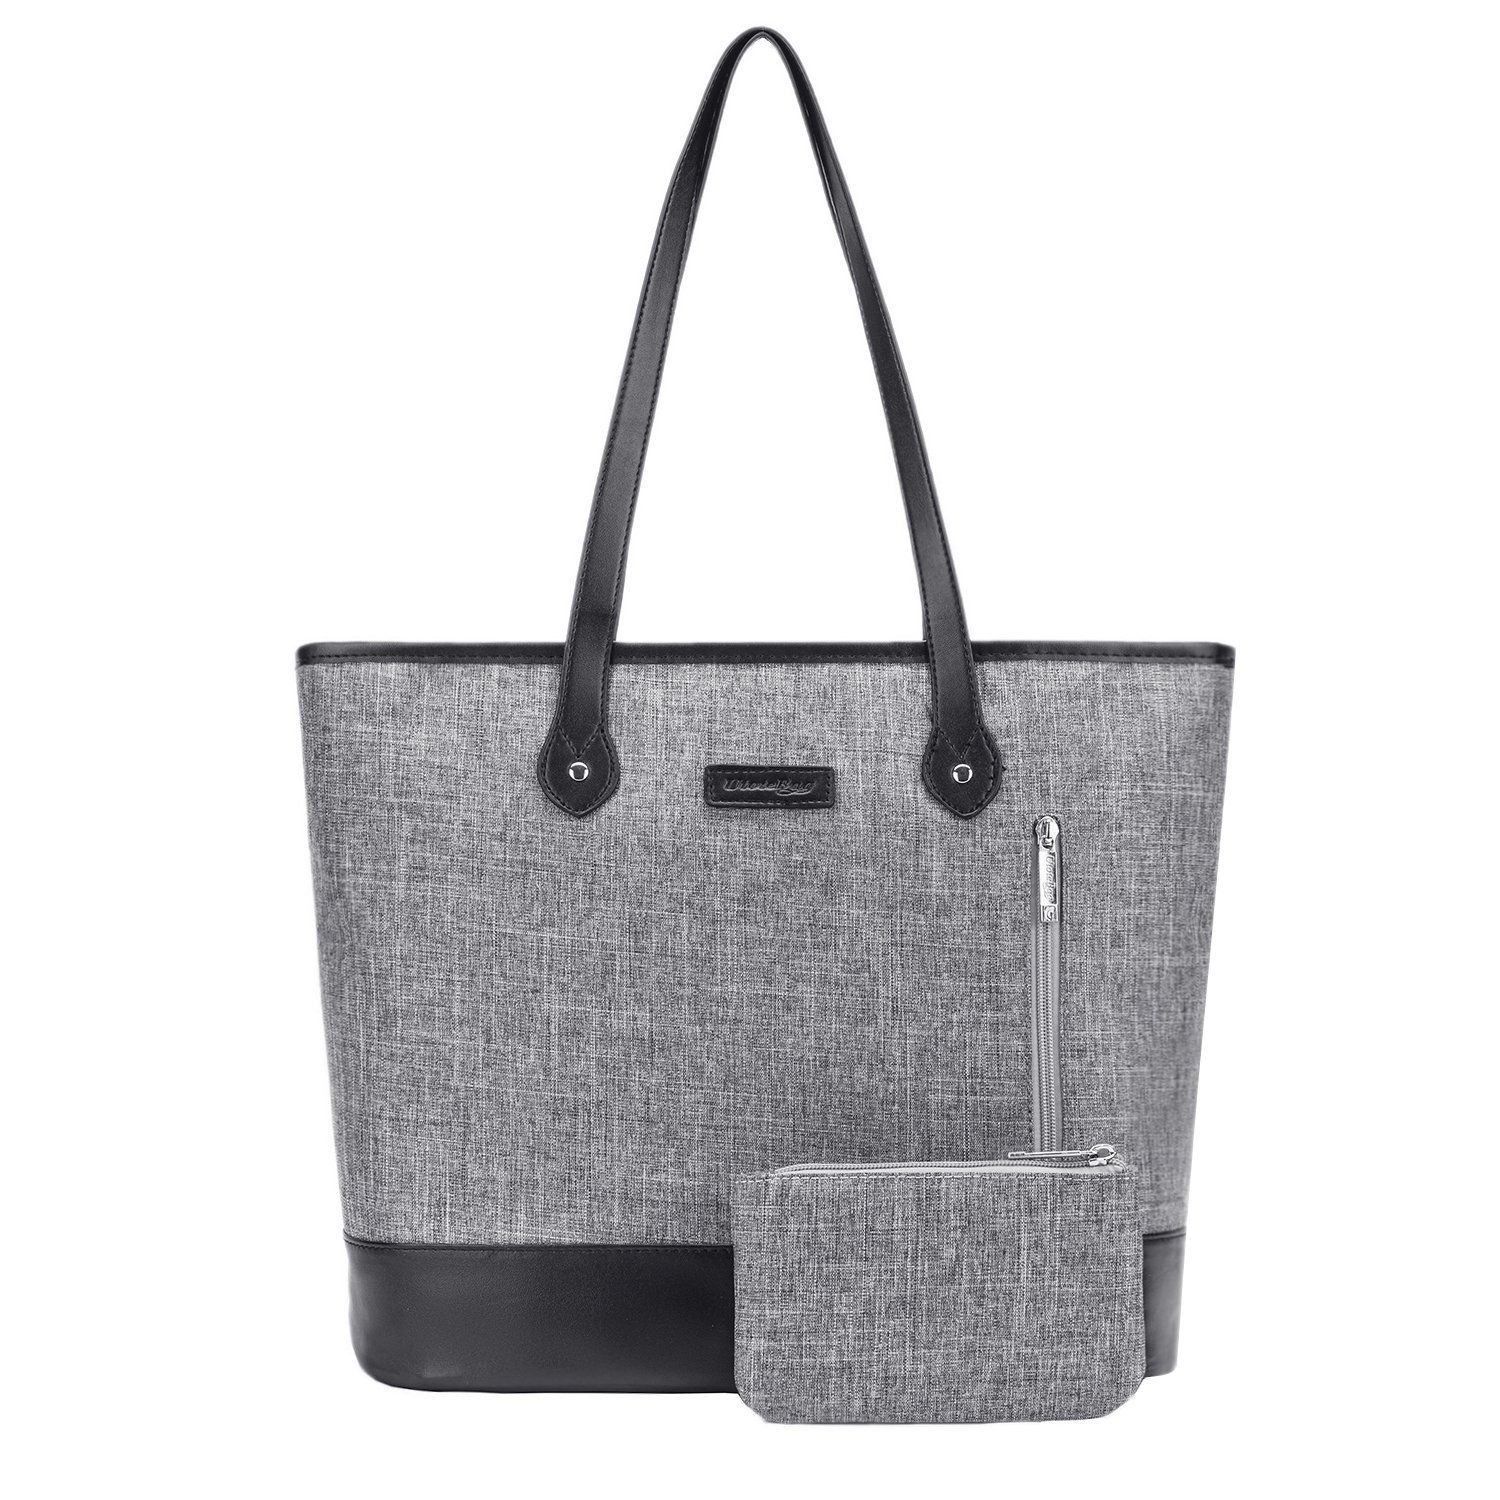 UtoteBag Women 15.6 Inch Laptop Tote Bag Notebook Shoulder Bag Lightweight Multi-pocket Nylon Business Work Office Briefcase for Computer/Macbook/Ultrabook (Grey)